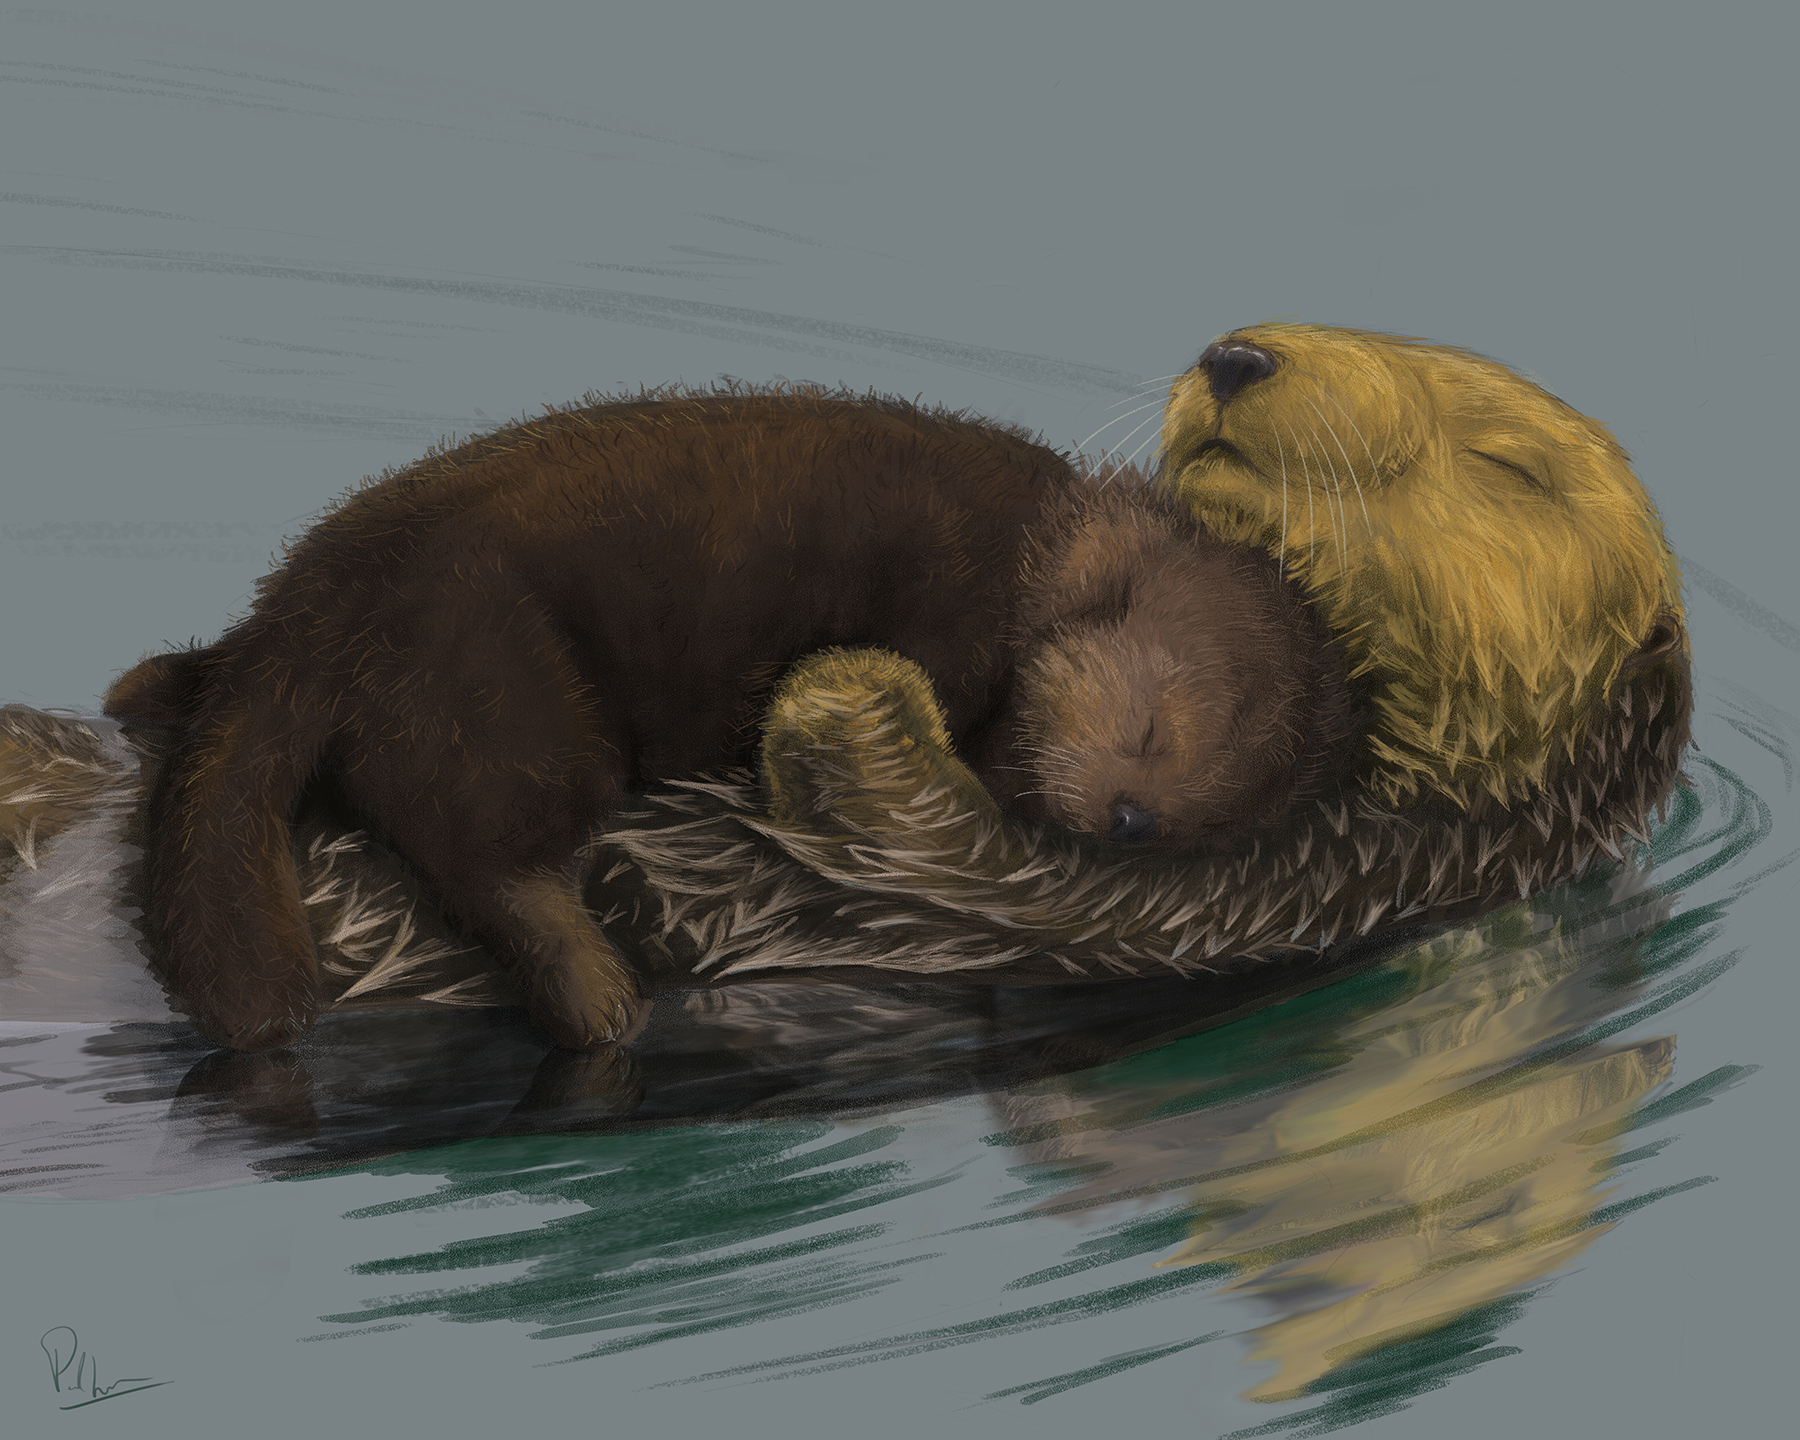 Otter mum and pup illustration by Six Foot Seven